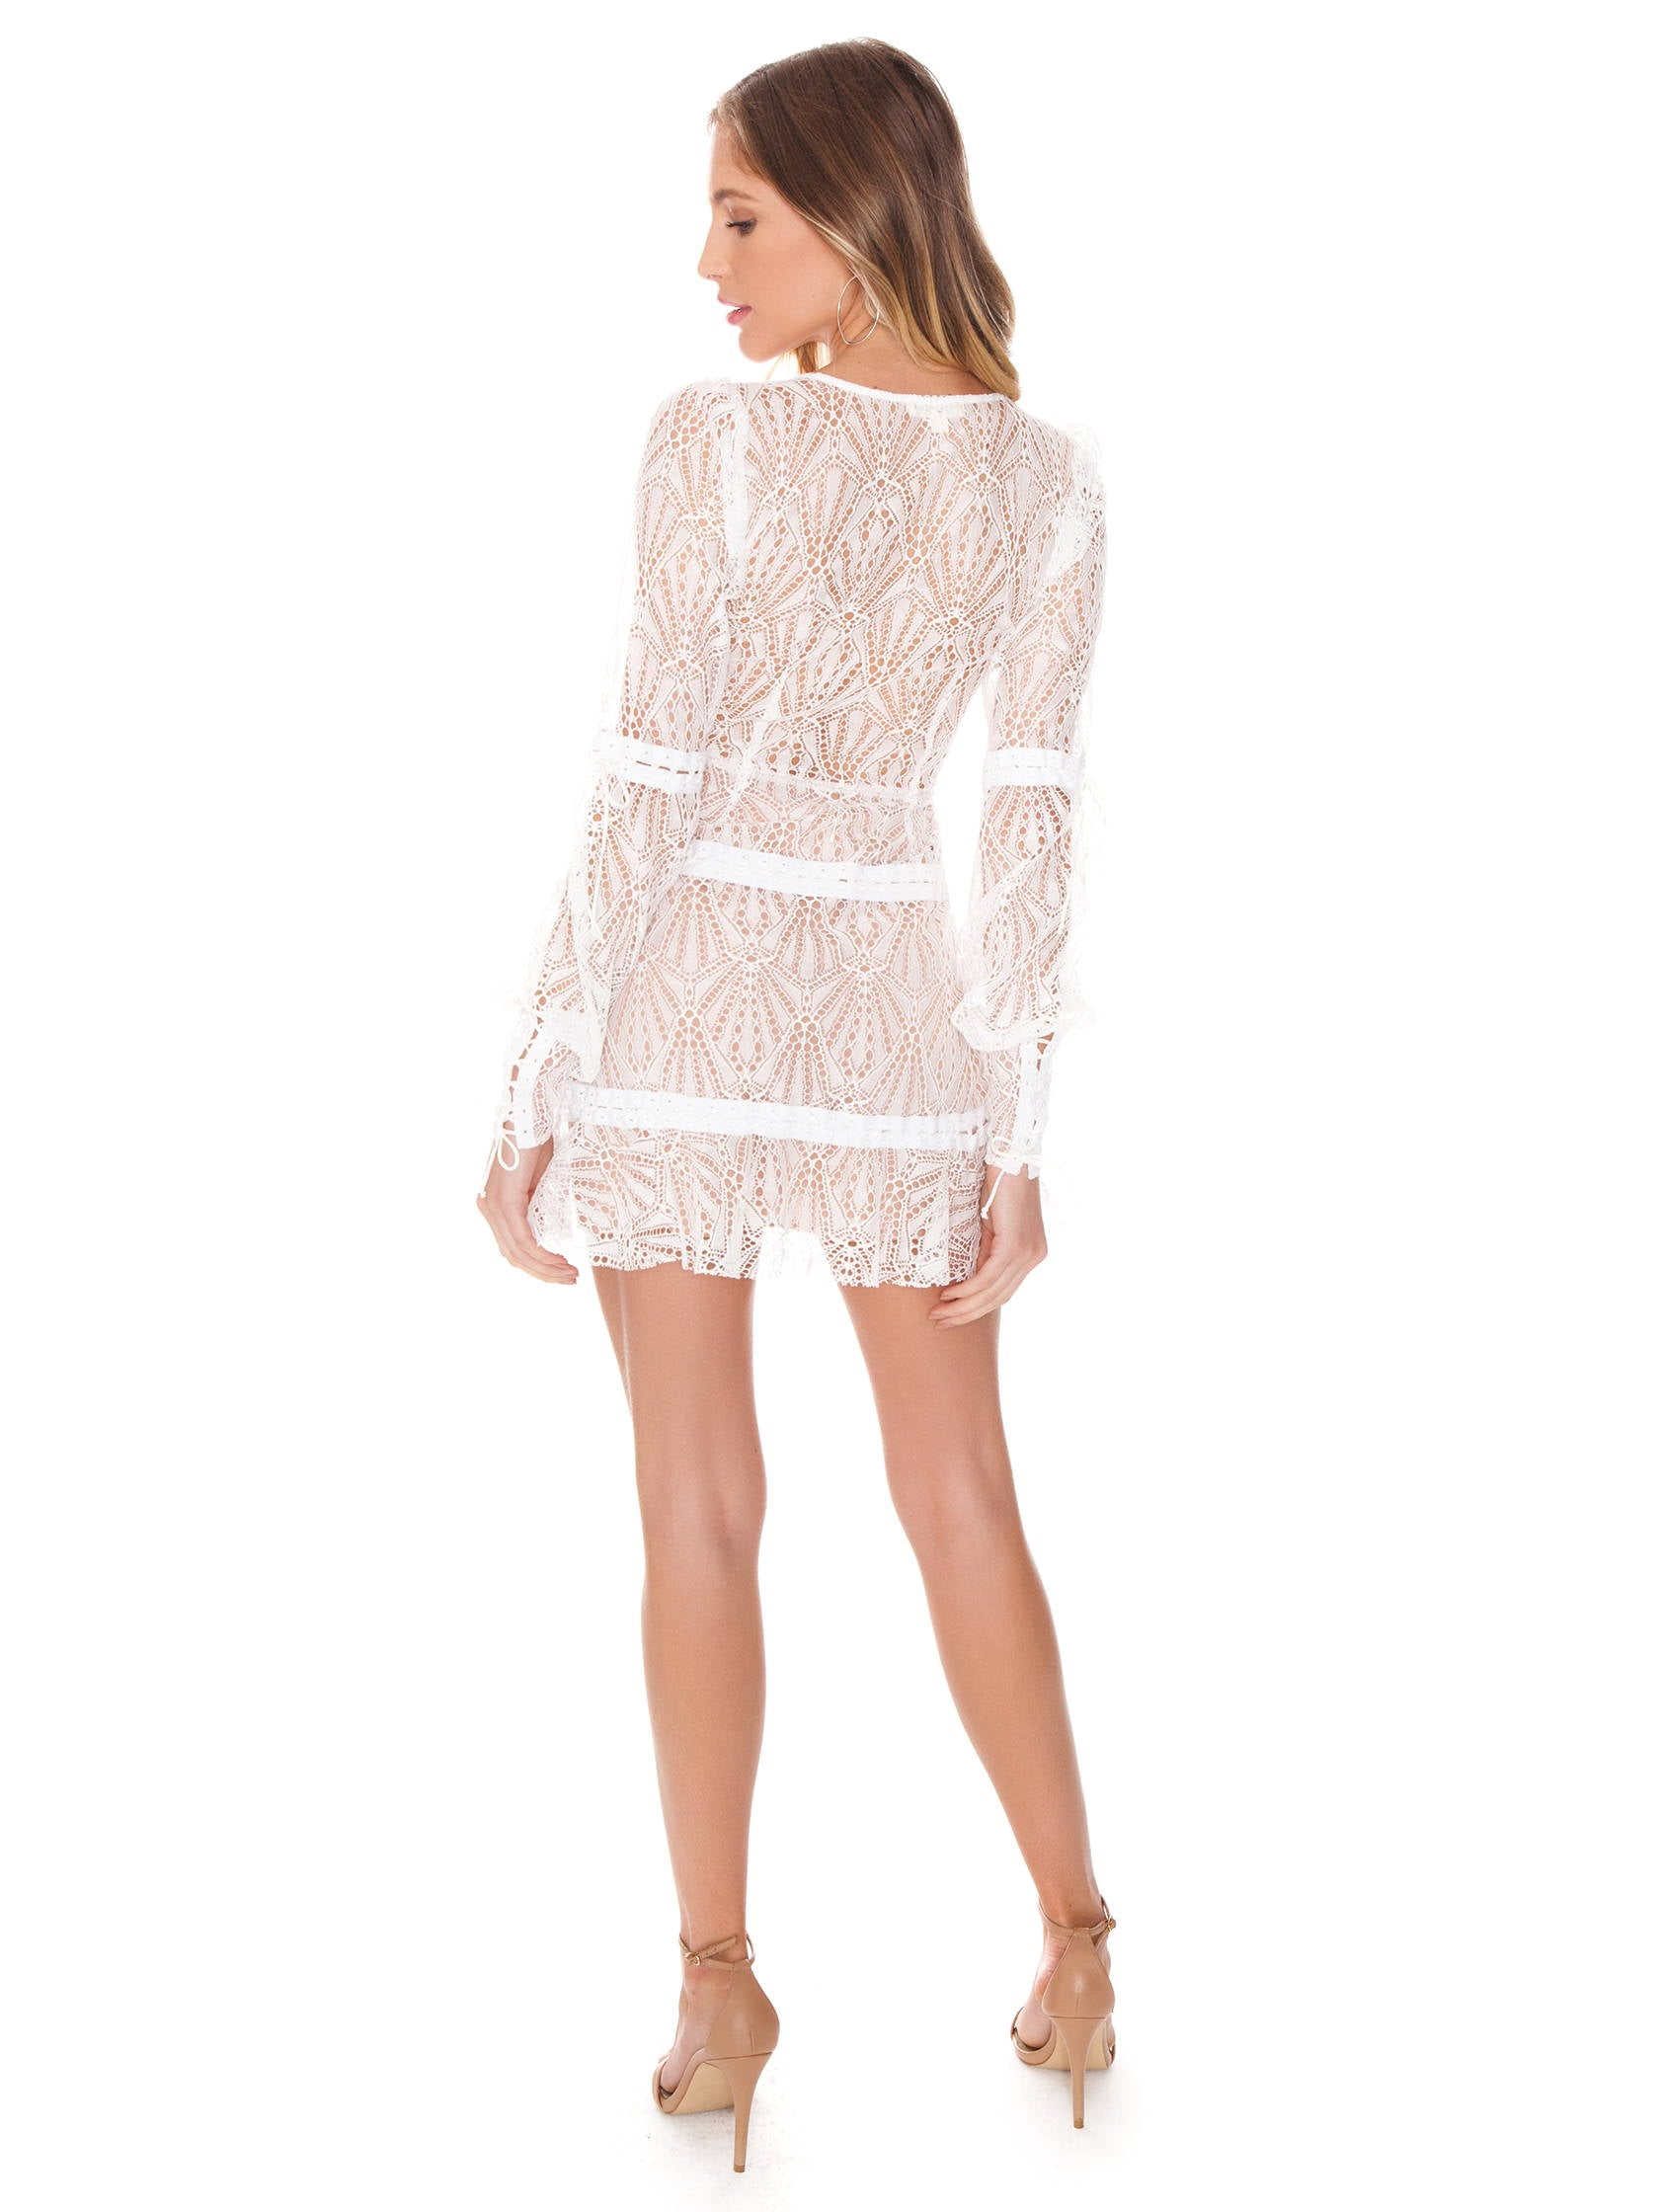 Women wearing a dress rental from For Love & Lemons called Bright Lights Mini Dress